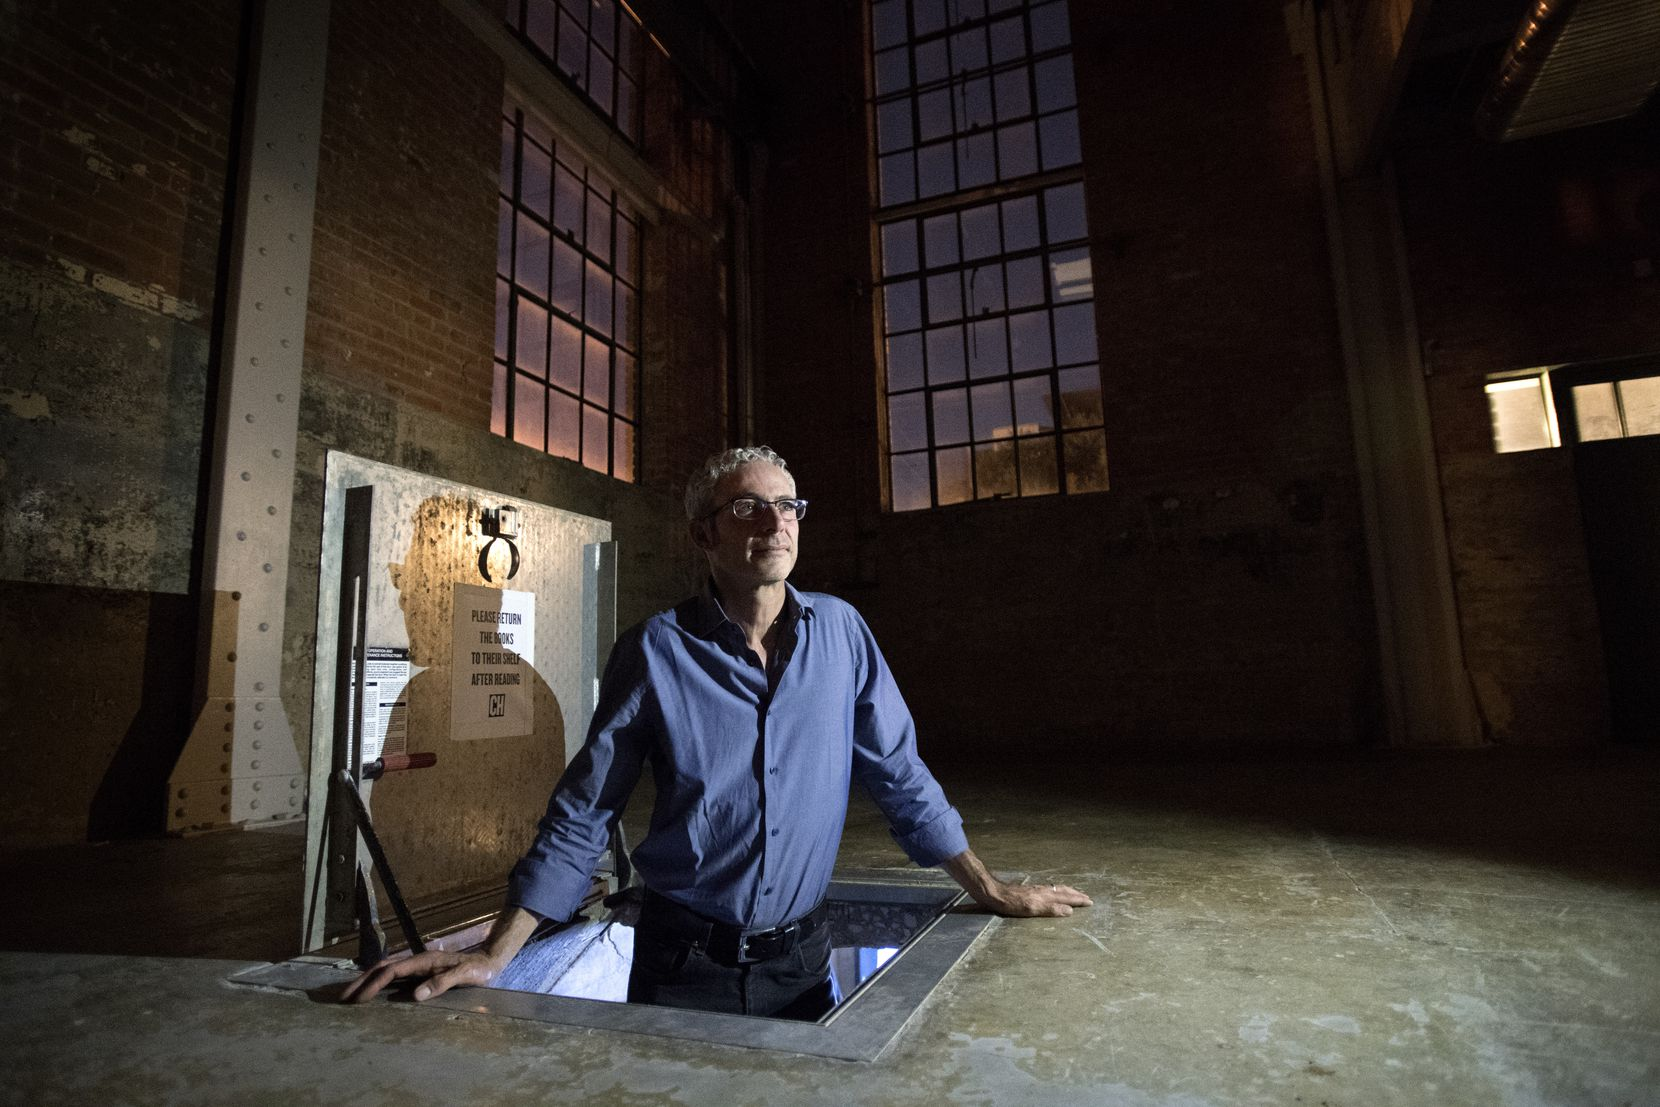 Mexico-based artist Carlos Ranc pops into Culture Hole, a 44-square-foot underground art exhibition space in Deep Ellum.